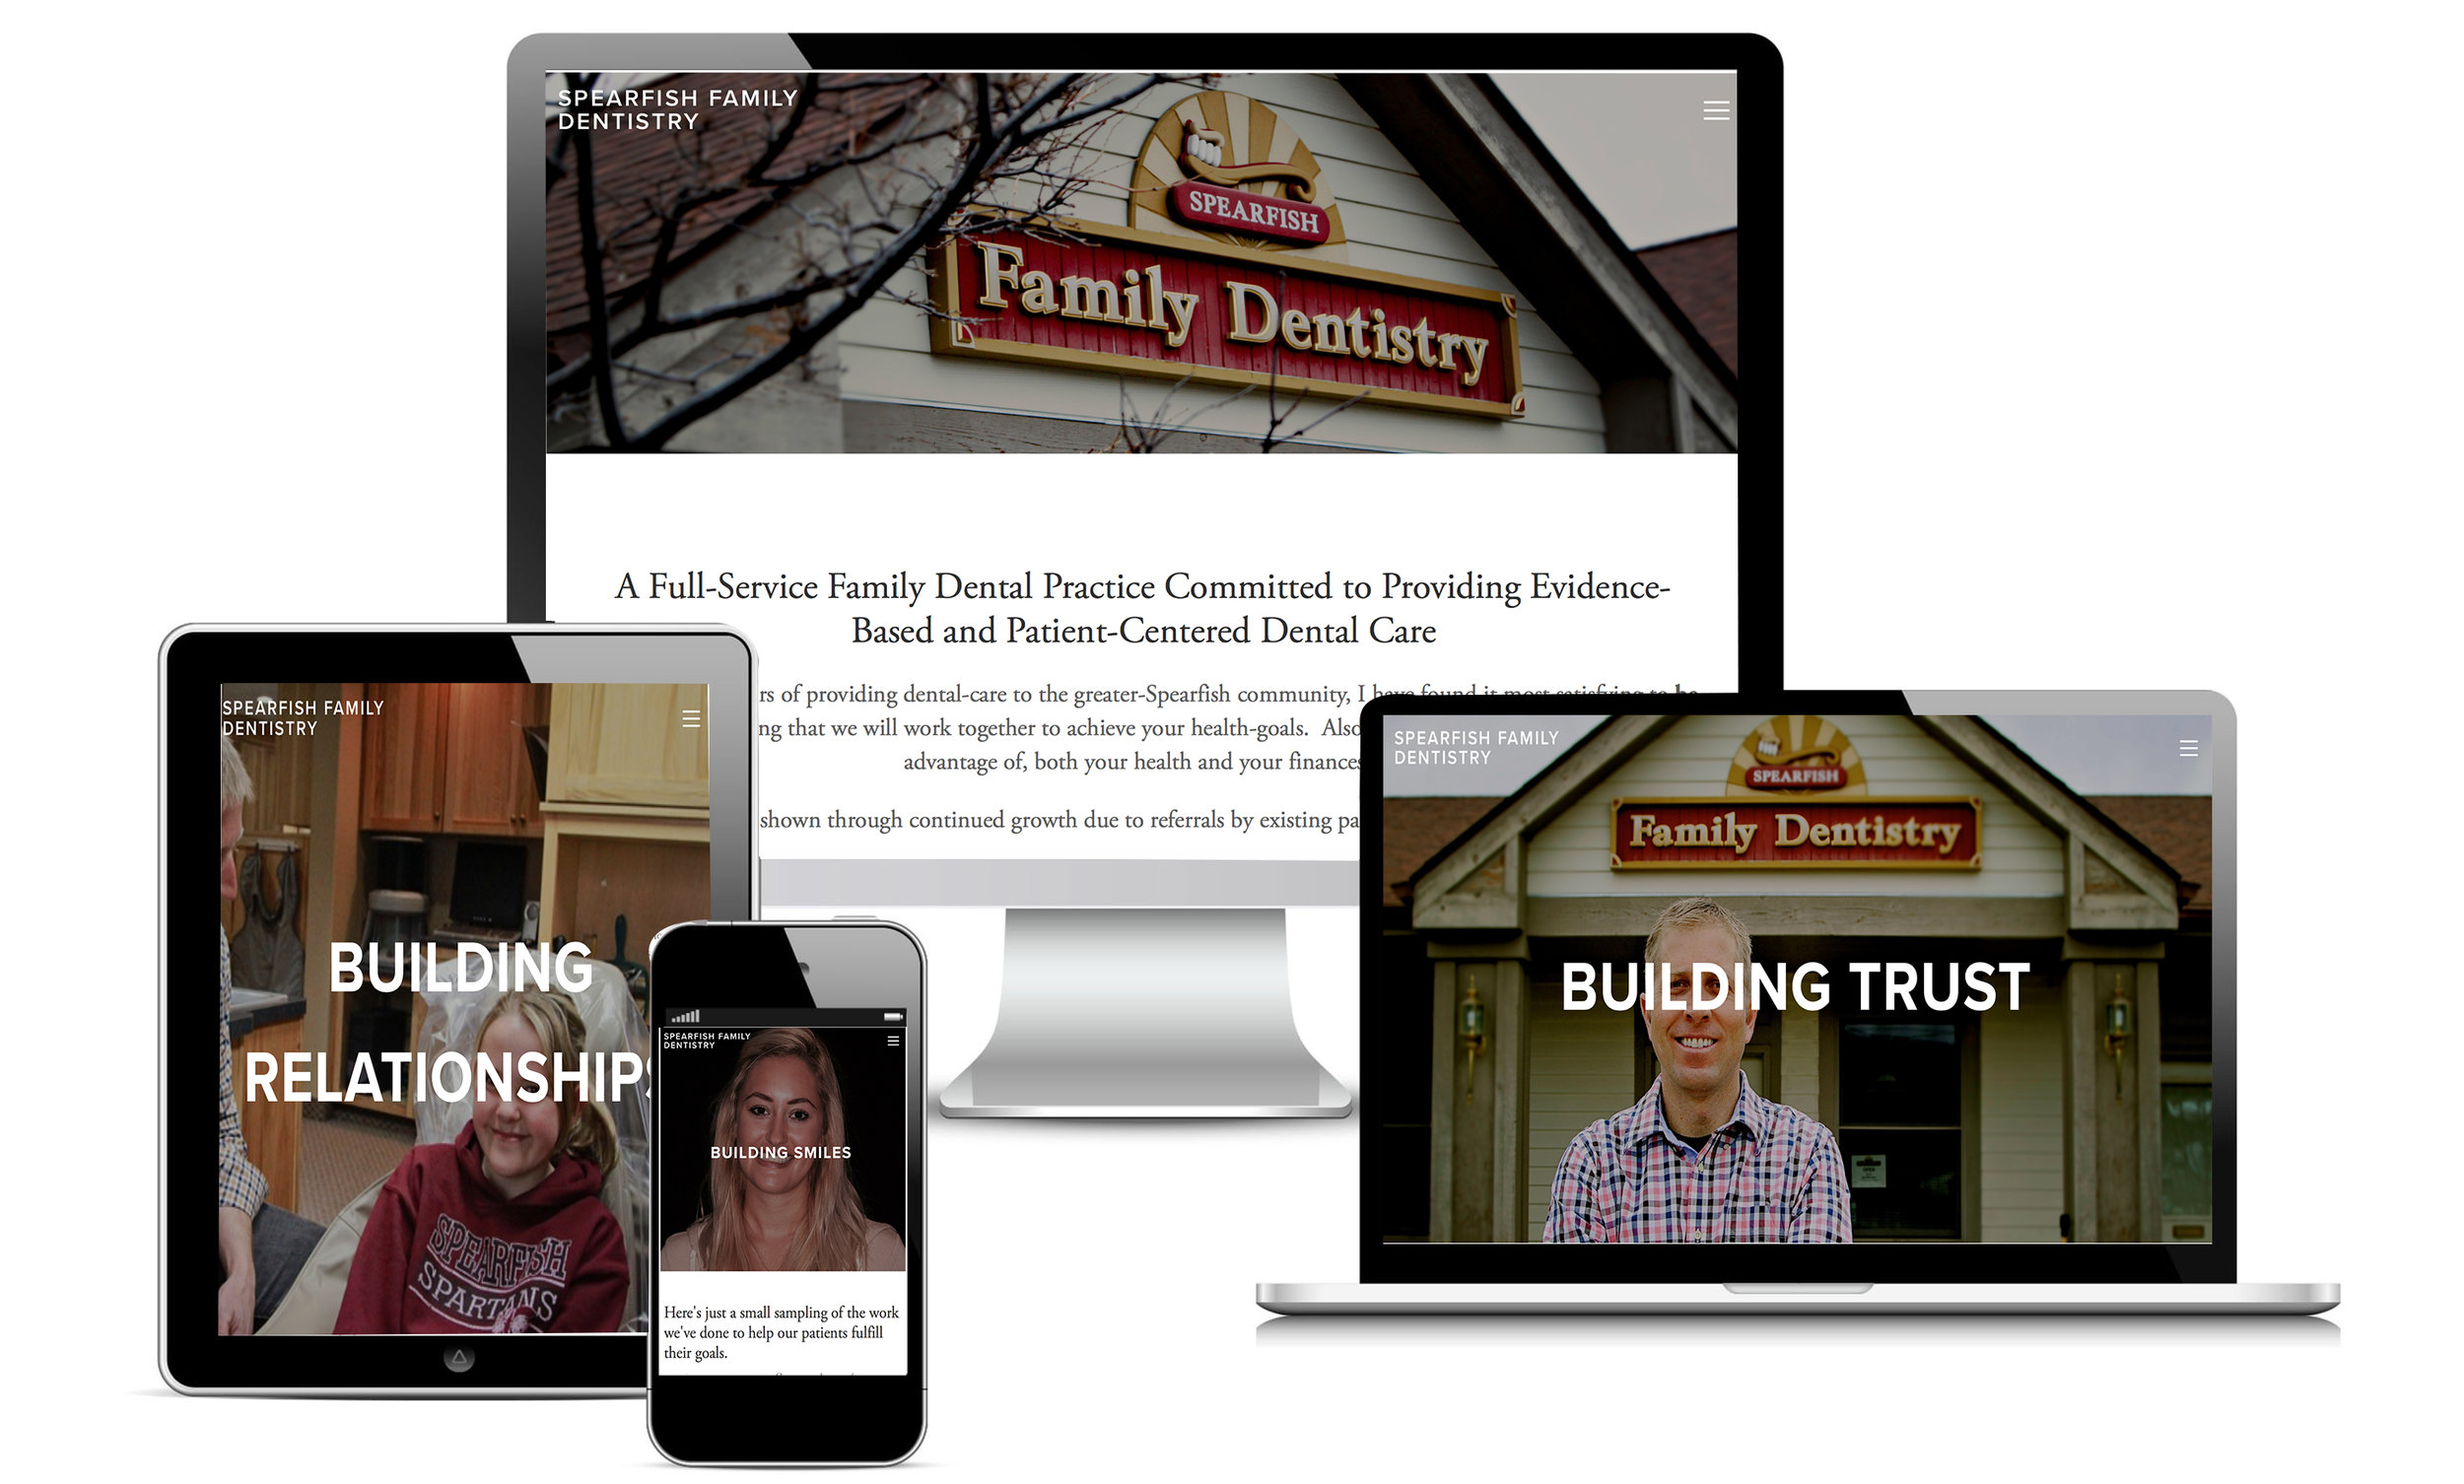 SPEARFISH FAMILY DENTISTRY